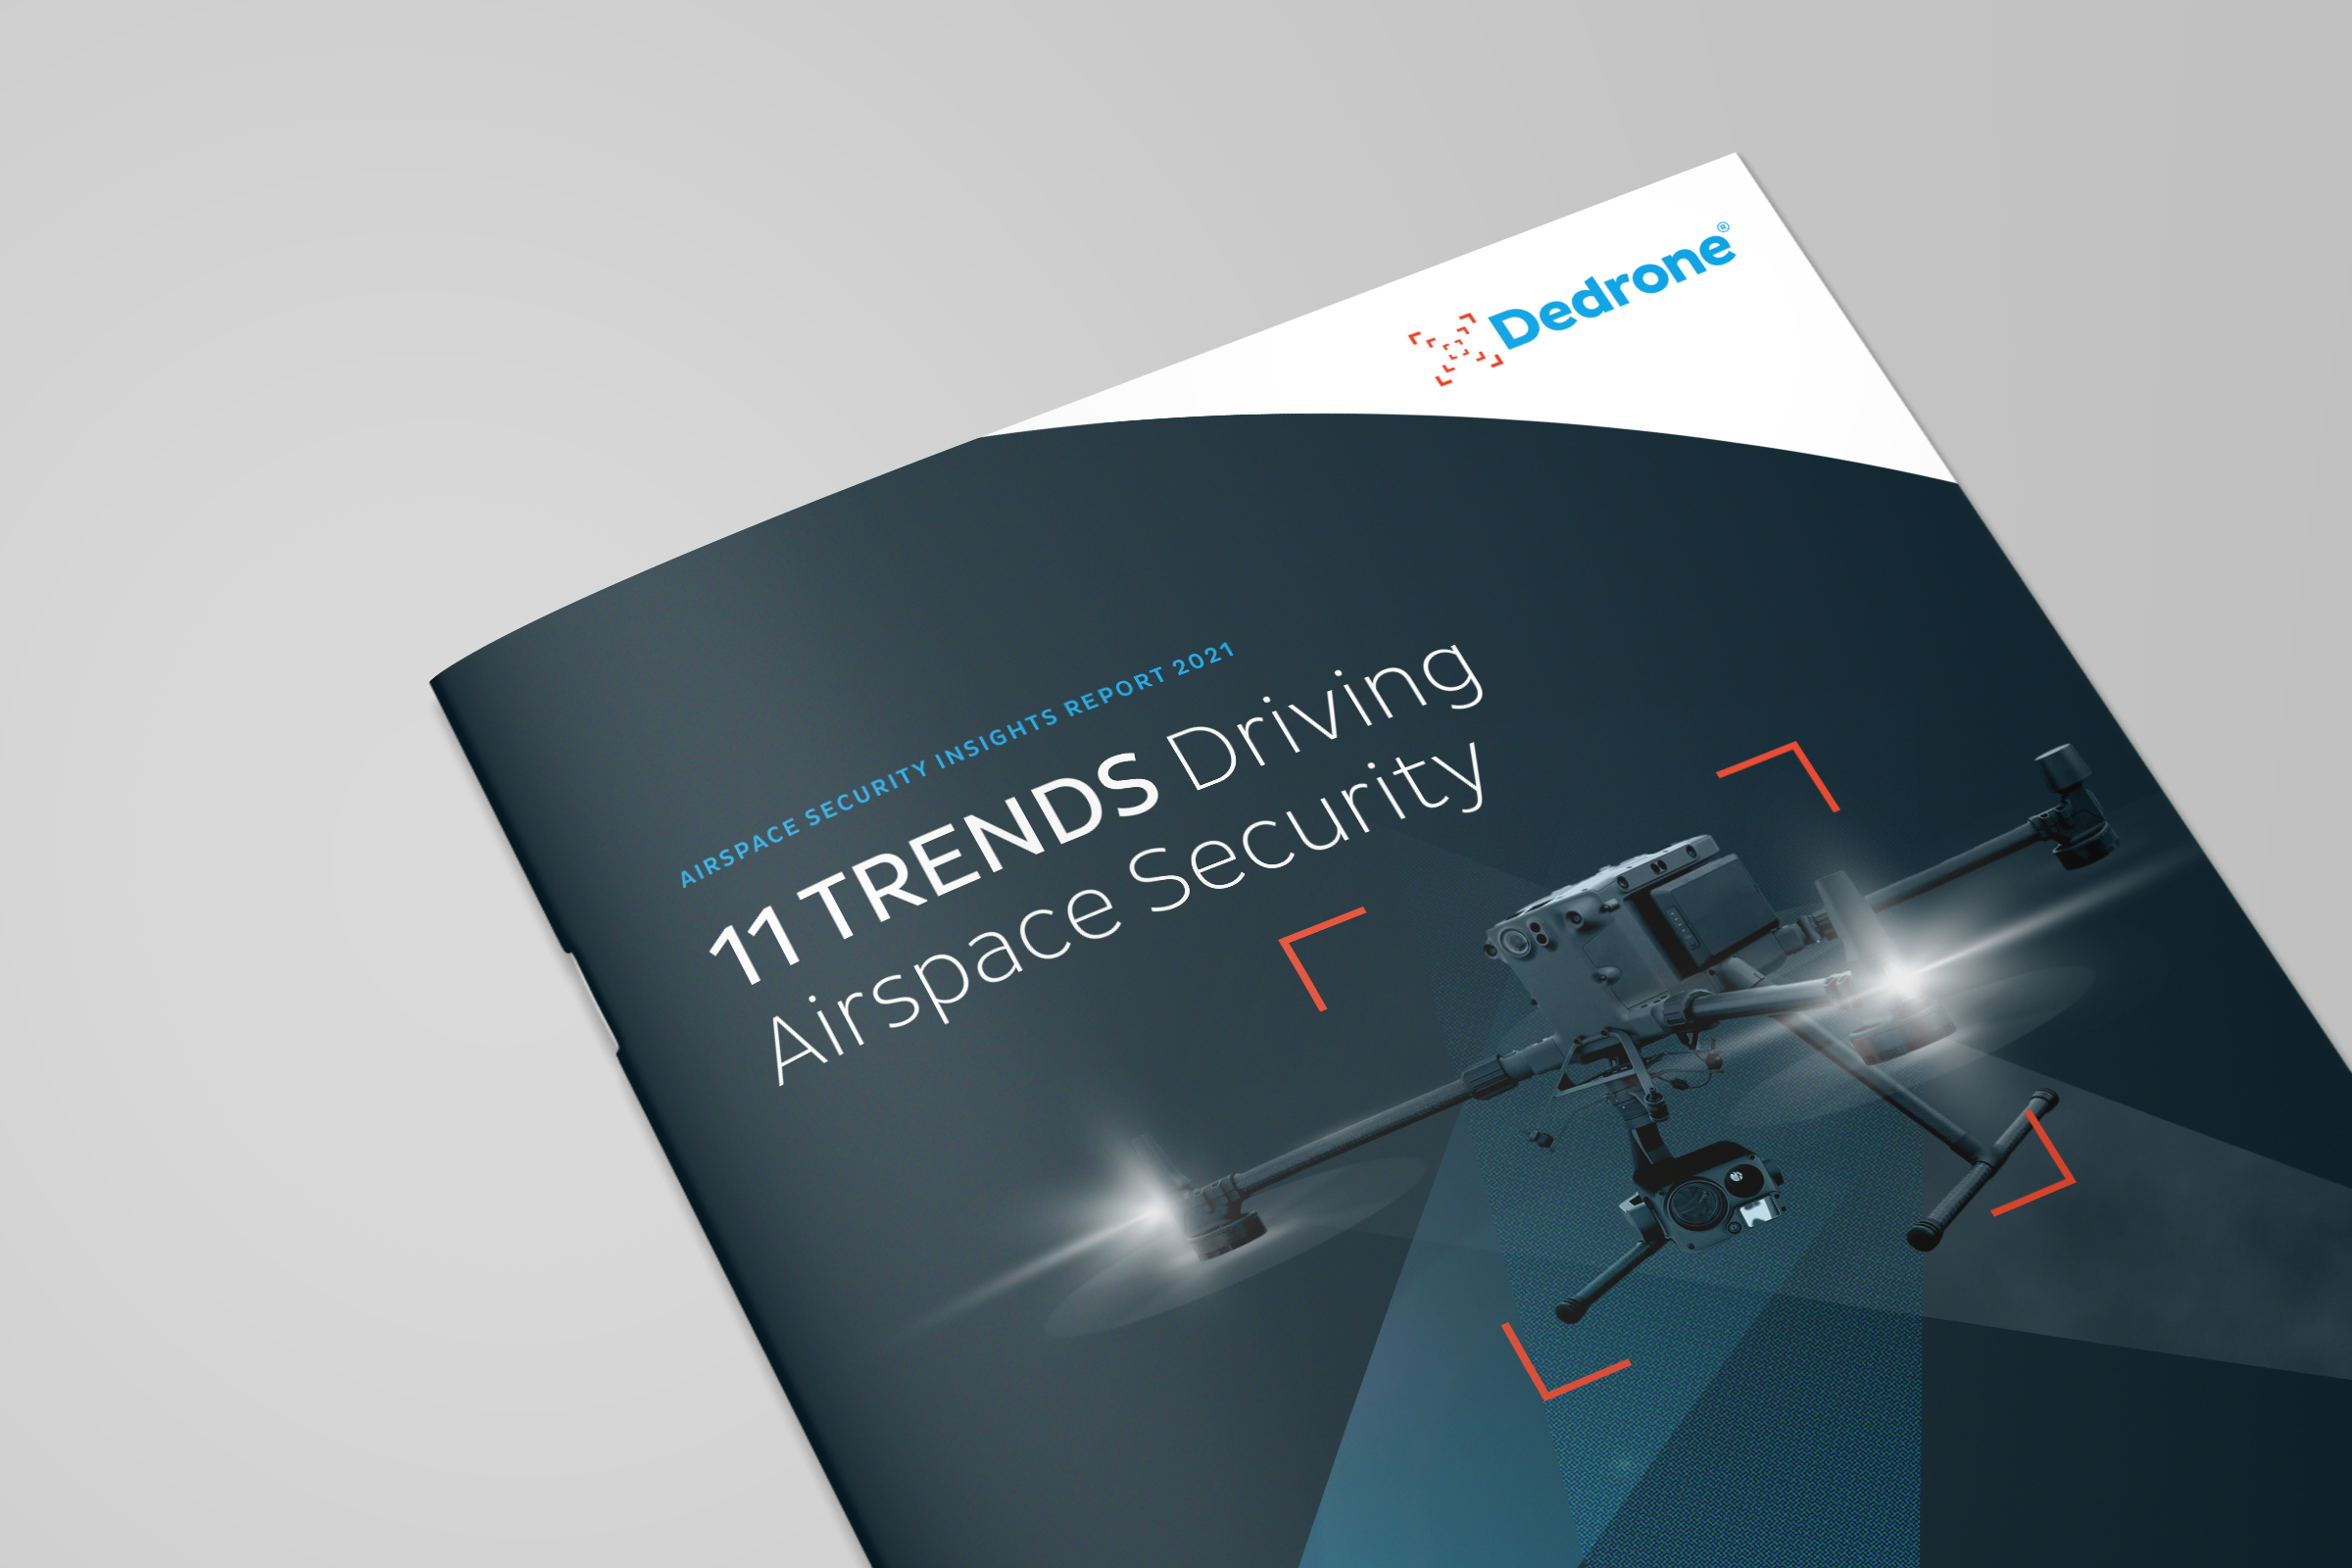 dedrone-airspace-security-report-2021-social-media-v2-1